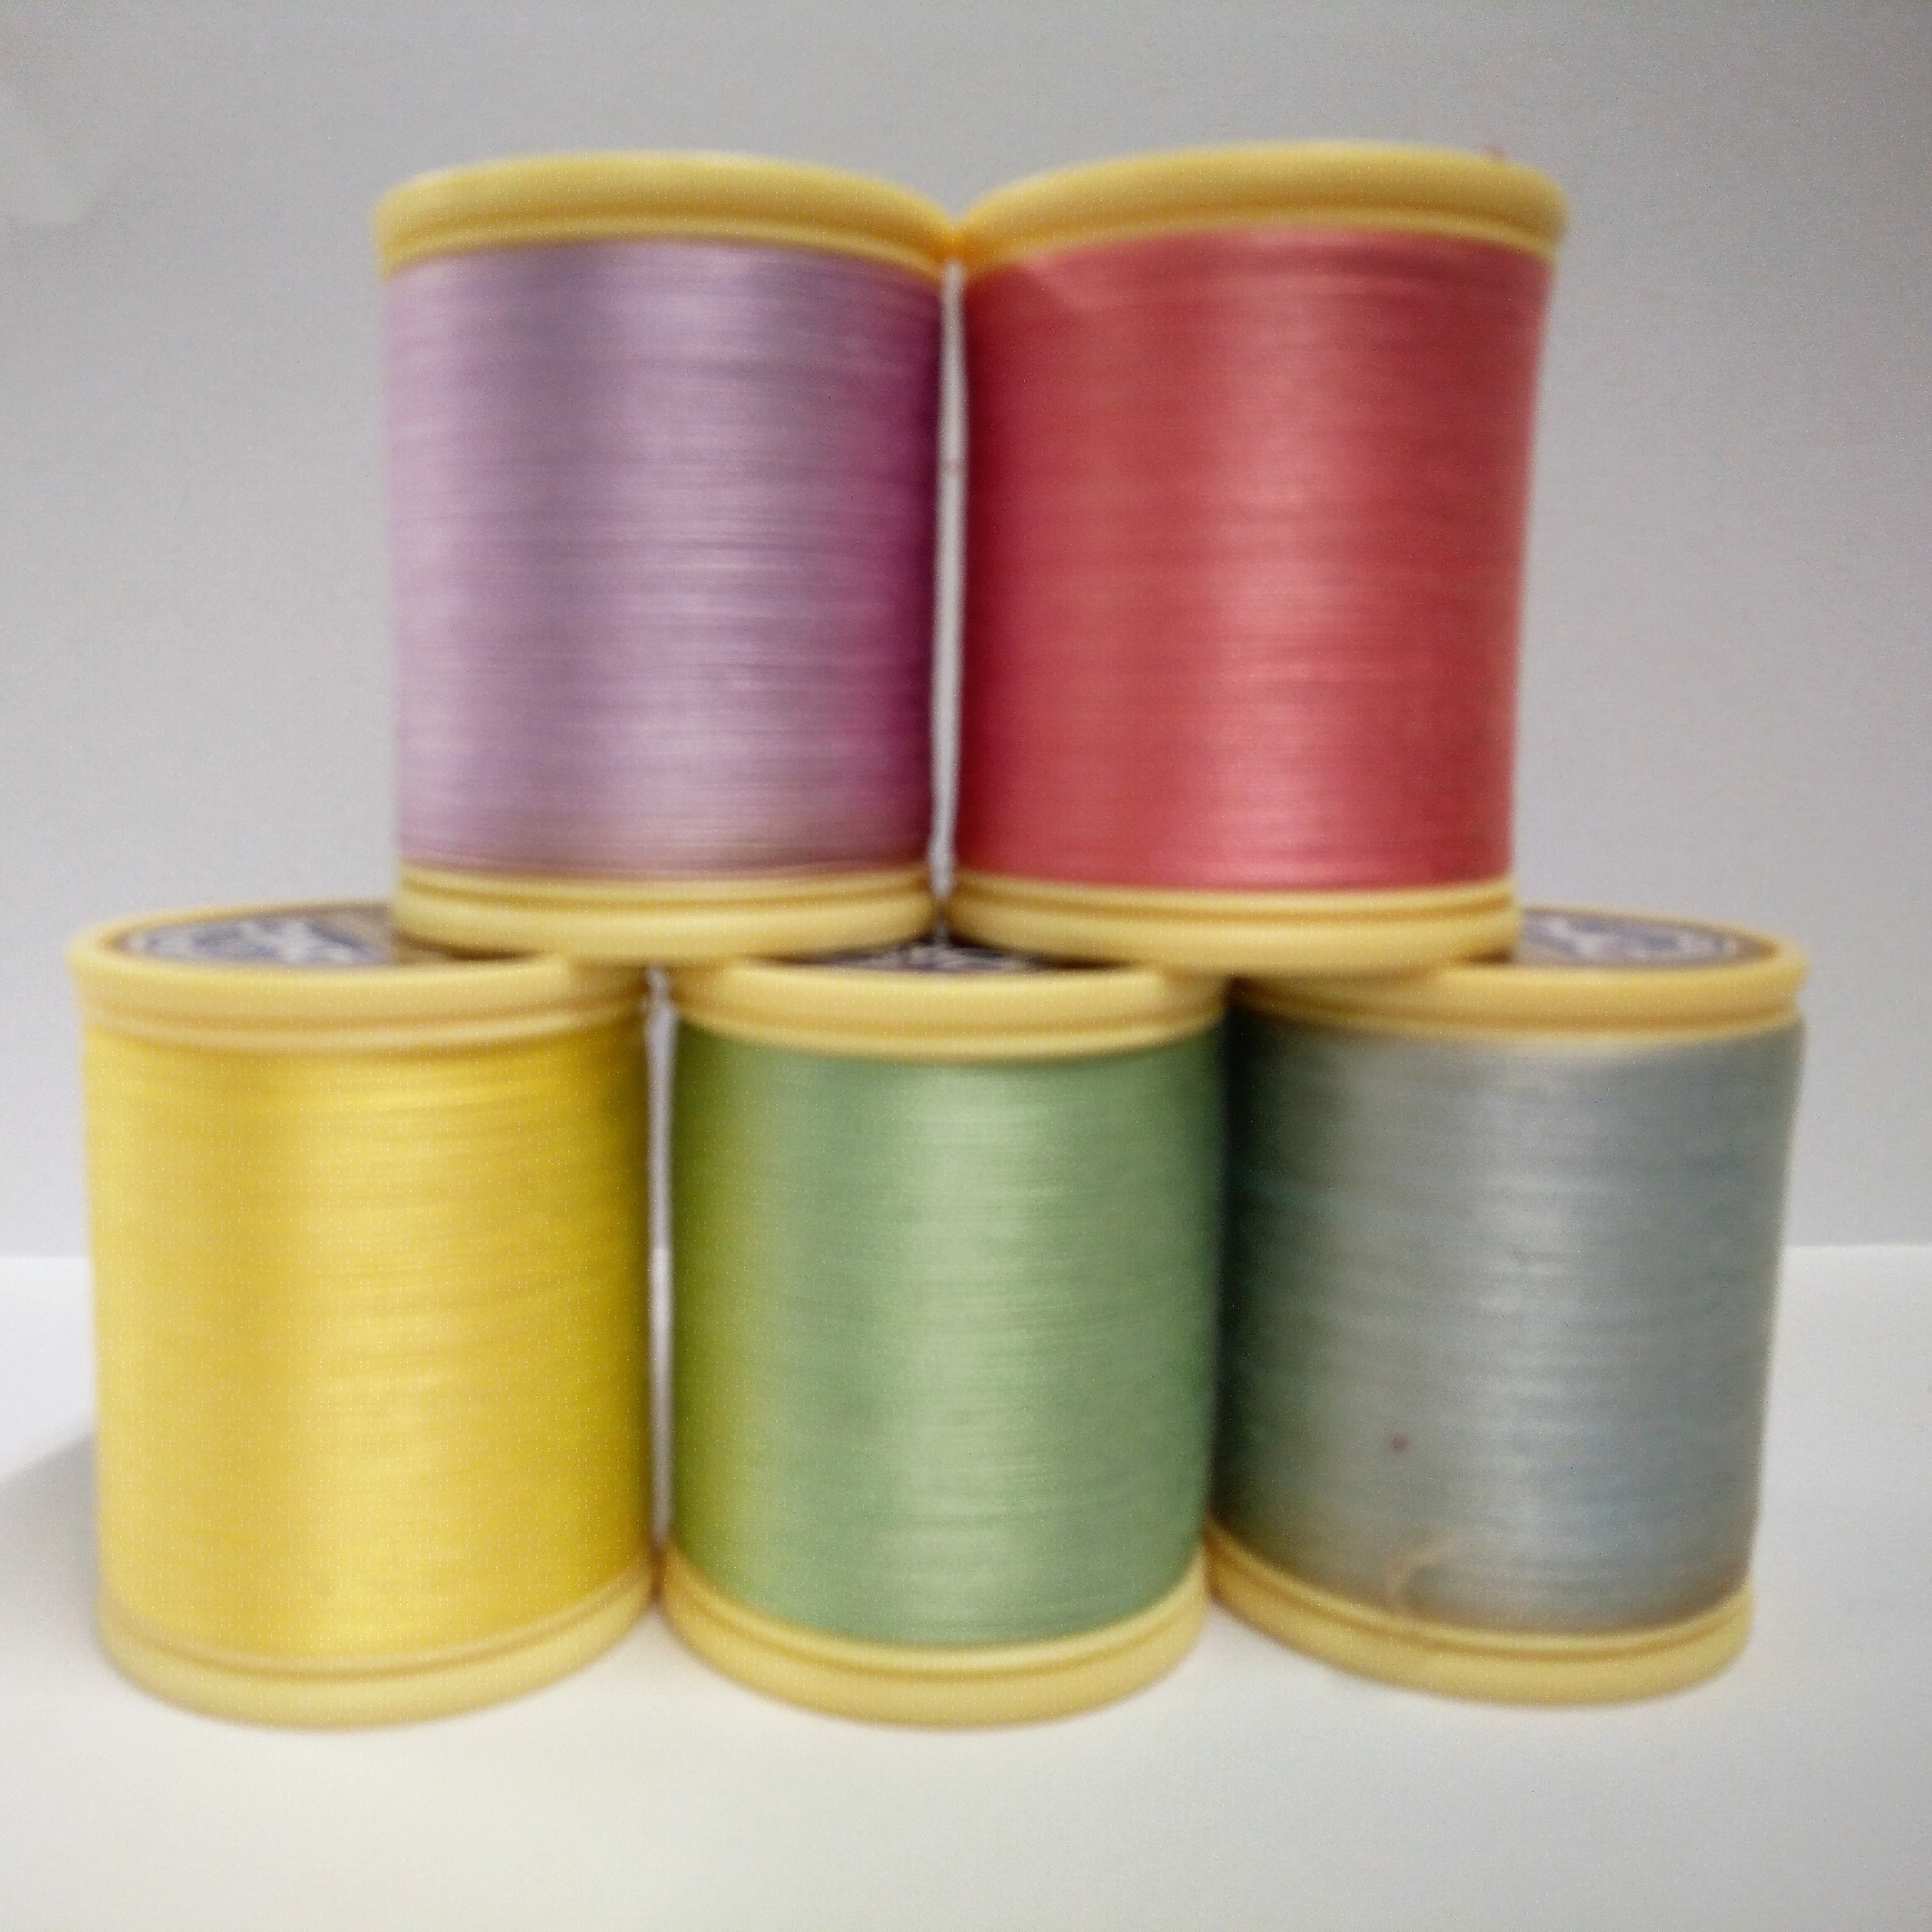 DMC - Machine Embroidery Thread - Starter Pack of 5 - Pastels (DM23750-AS1)